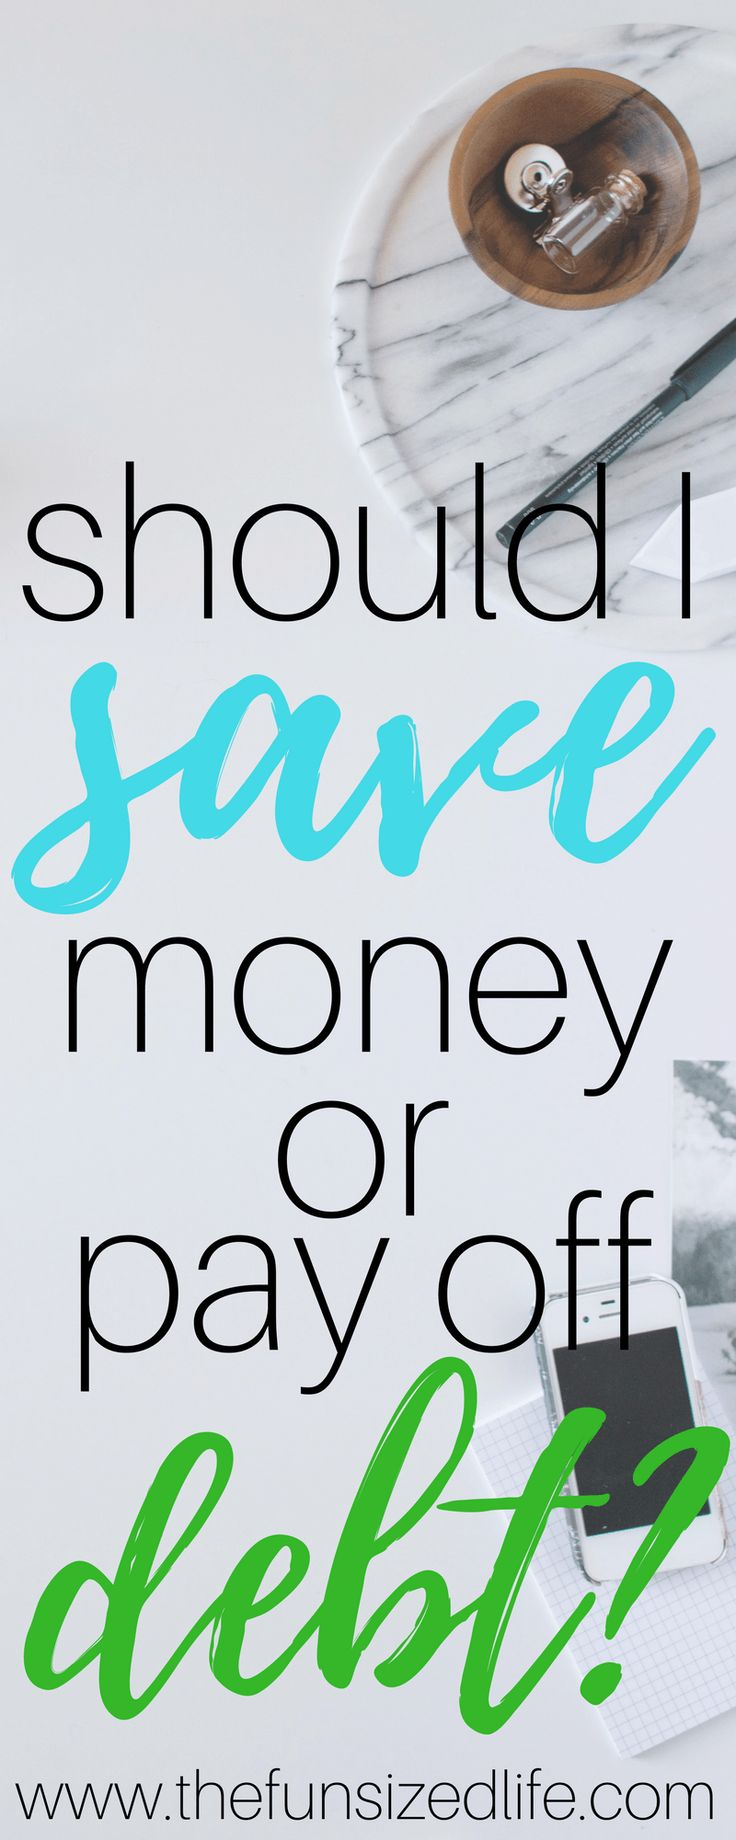 save, debt, debt payoff, savings, should I save, save money, pay off debts, financial peace university, finances, budgeting, get out of debt, debt snowball